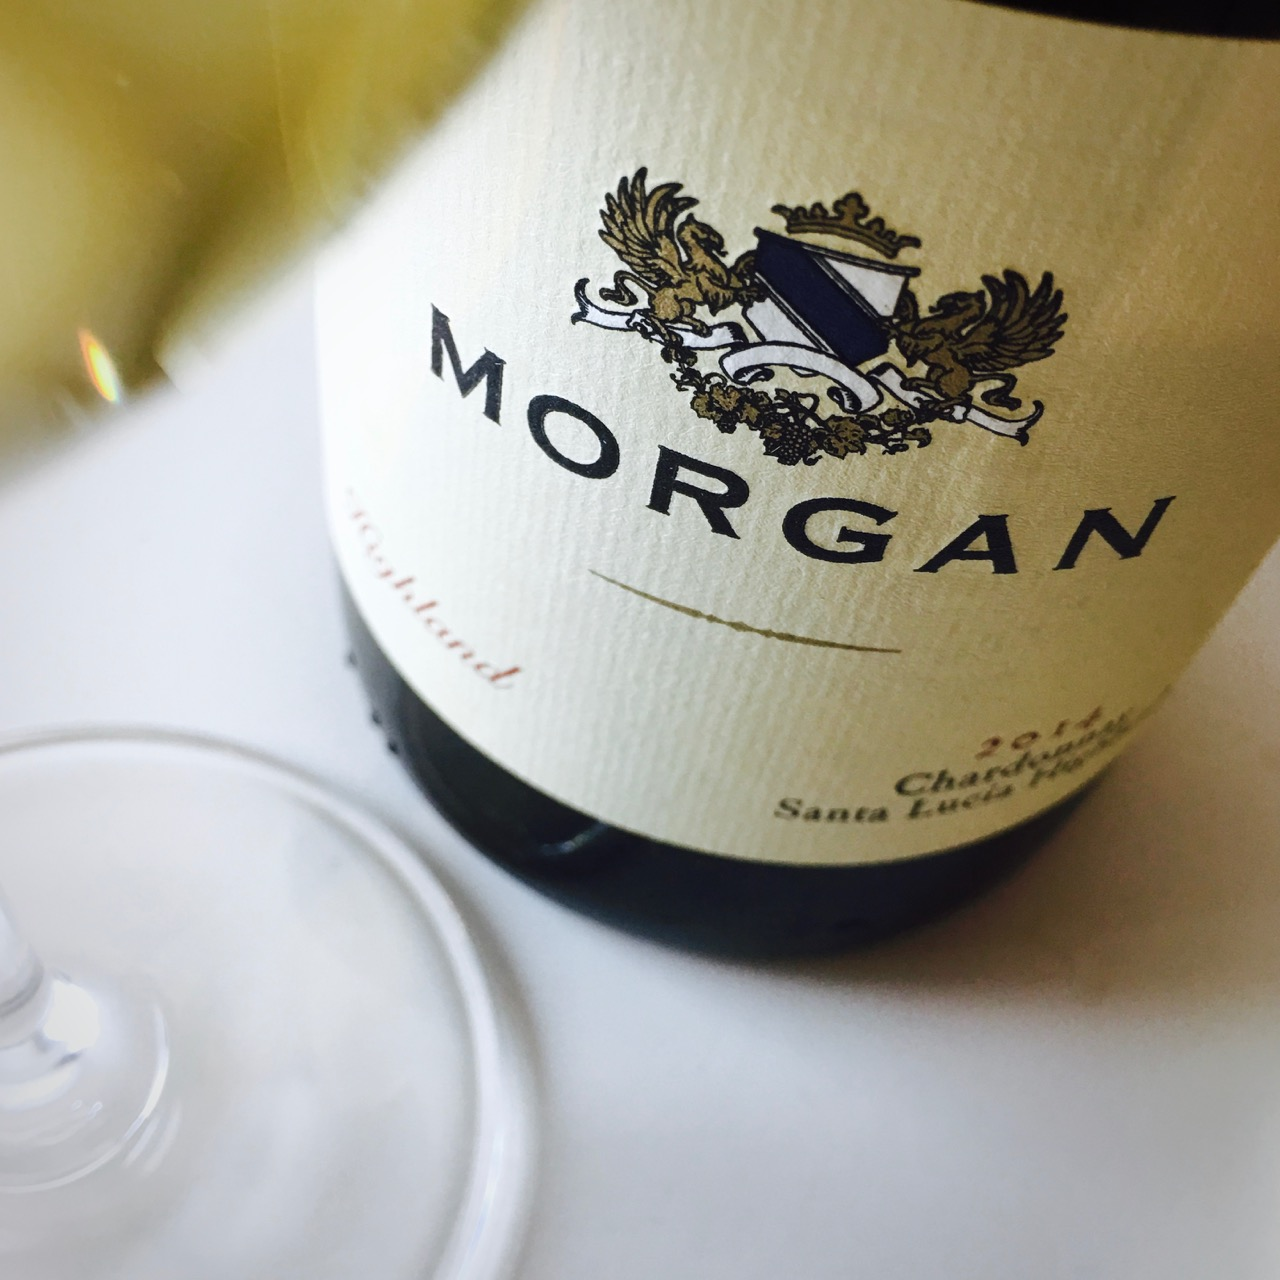 2014 Morgan Winery Chardonnay Highland Santa Lucia Highlands